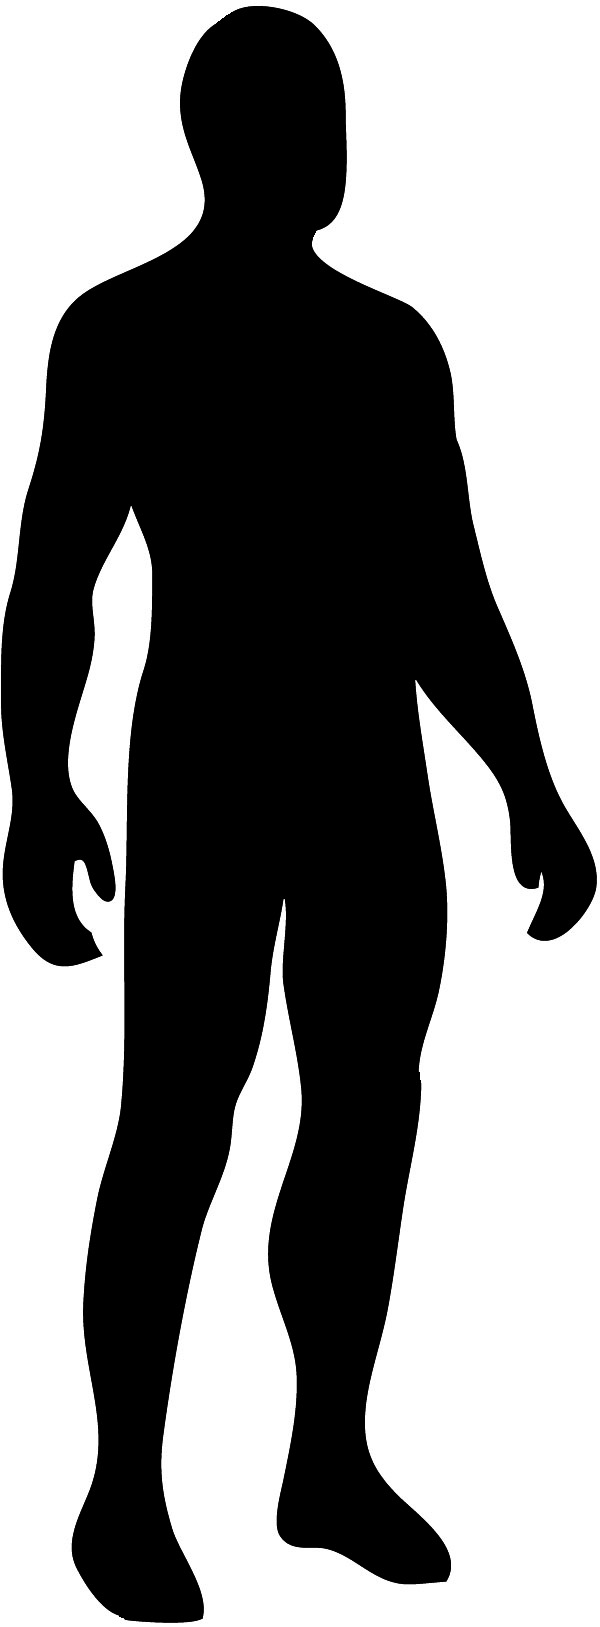 10 Silhouette Human Free Cliparts That You Can Download To You